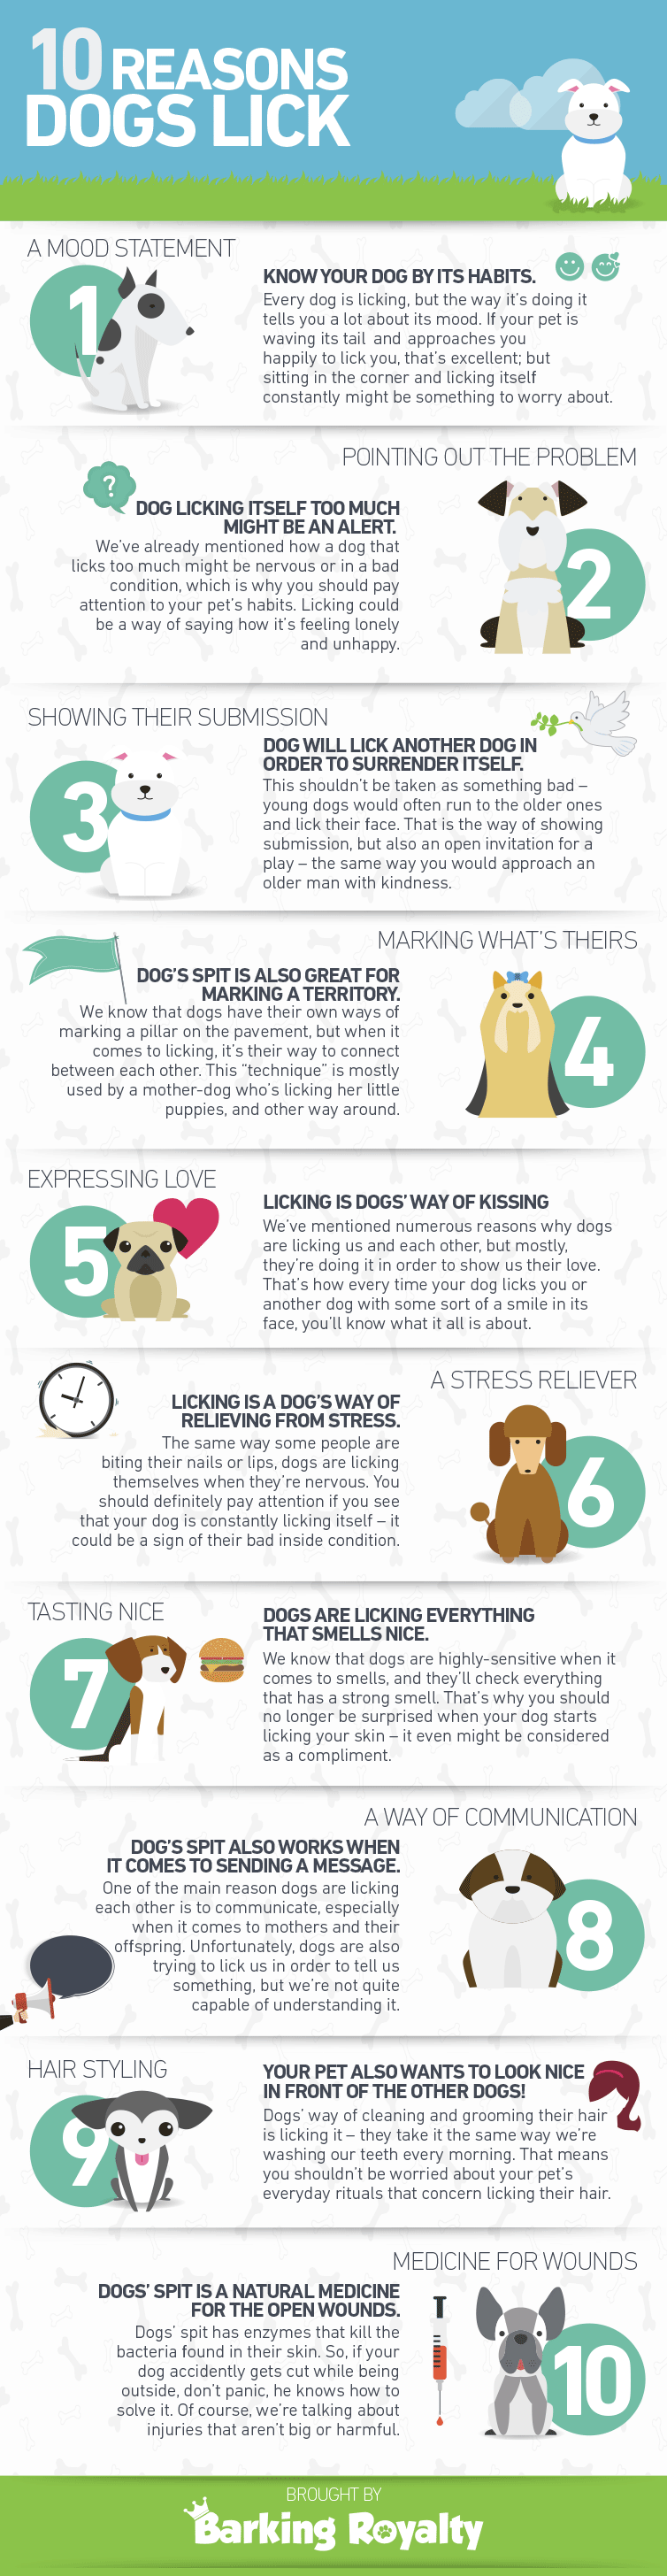 10 Reasons Why Dogs Lick Infographic